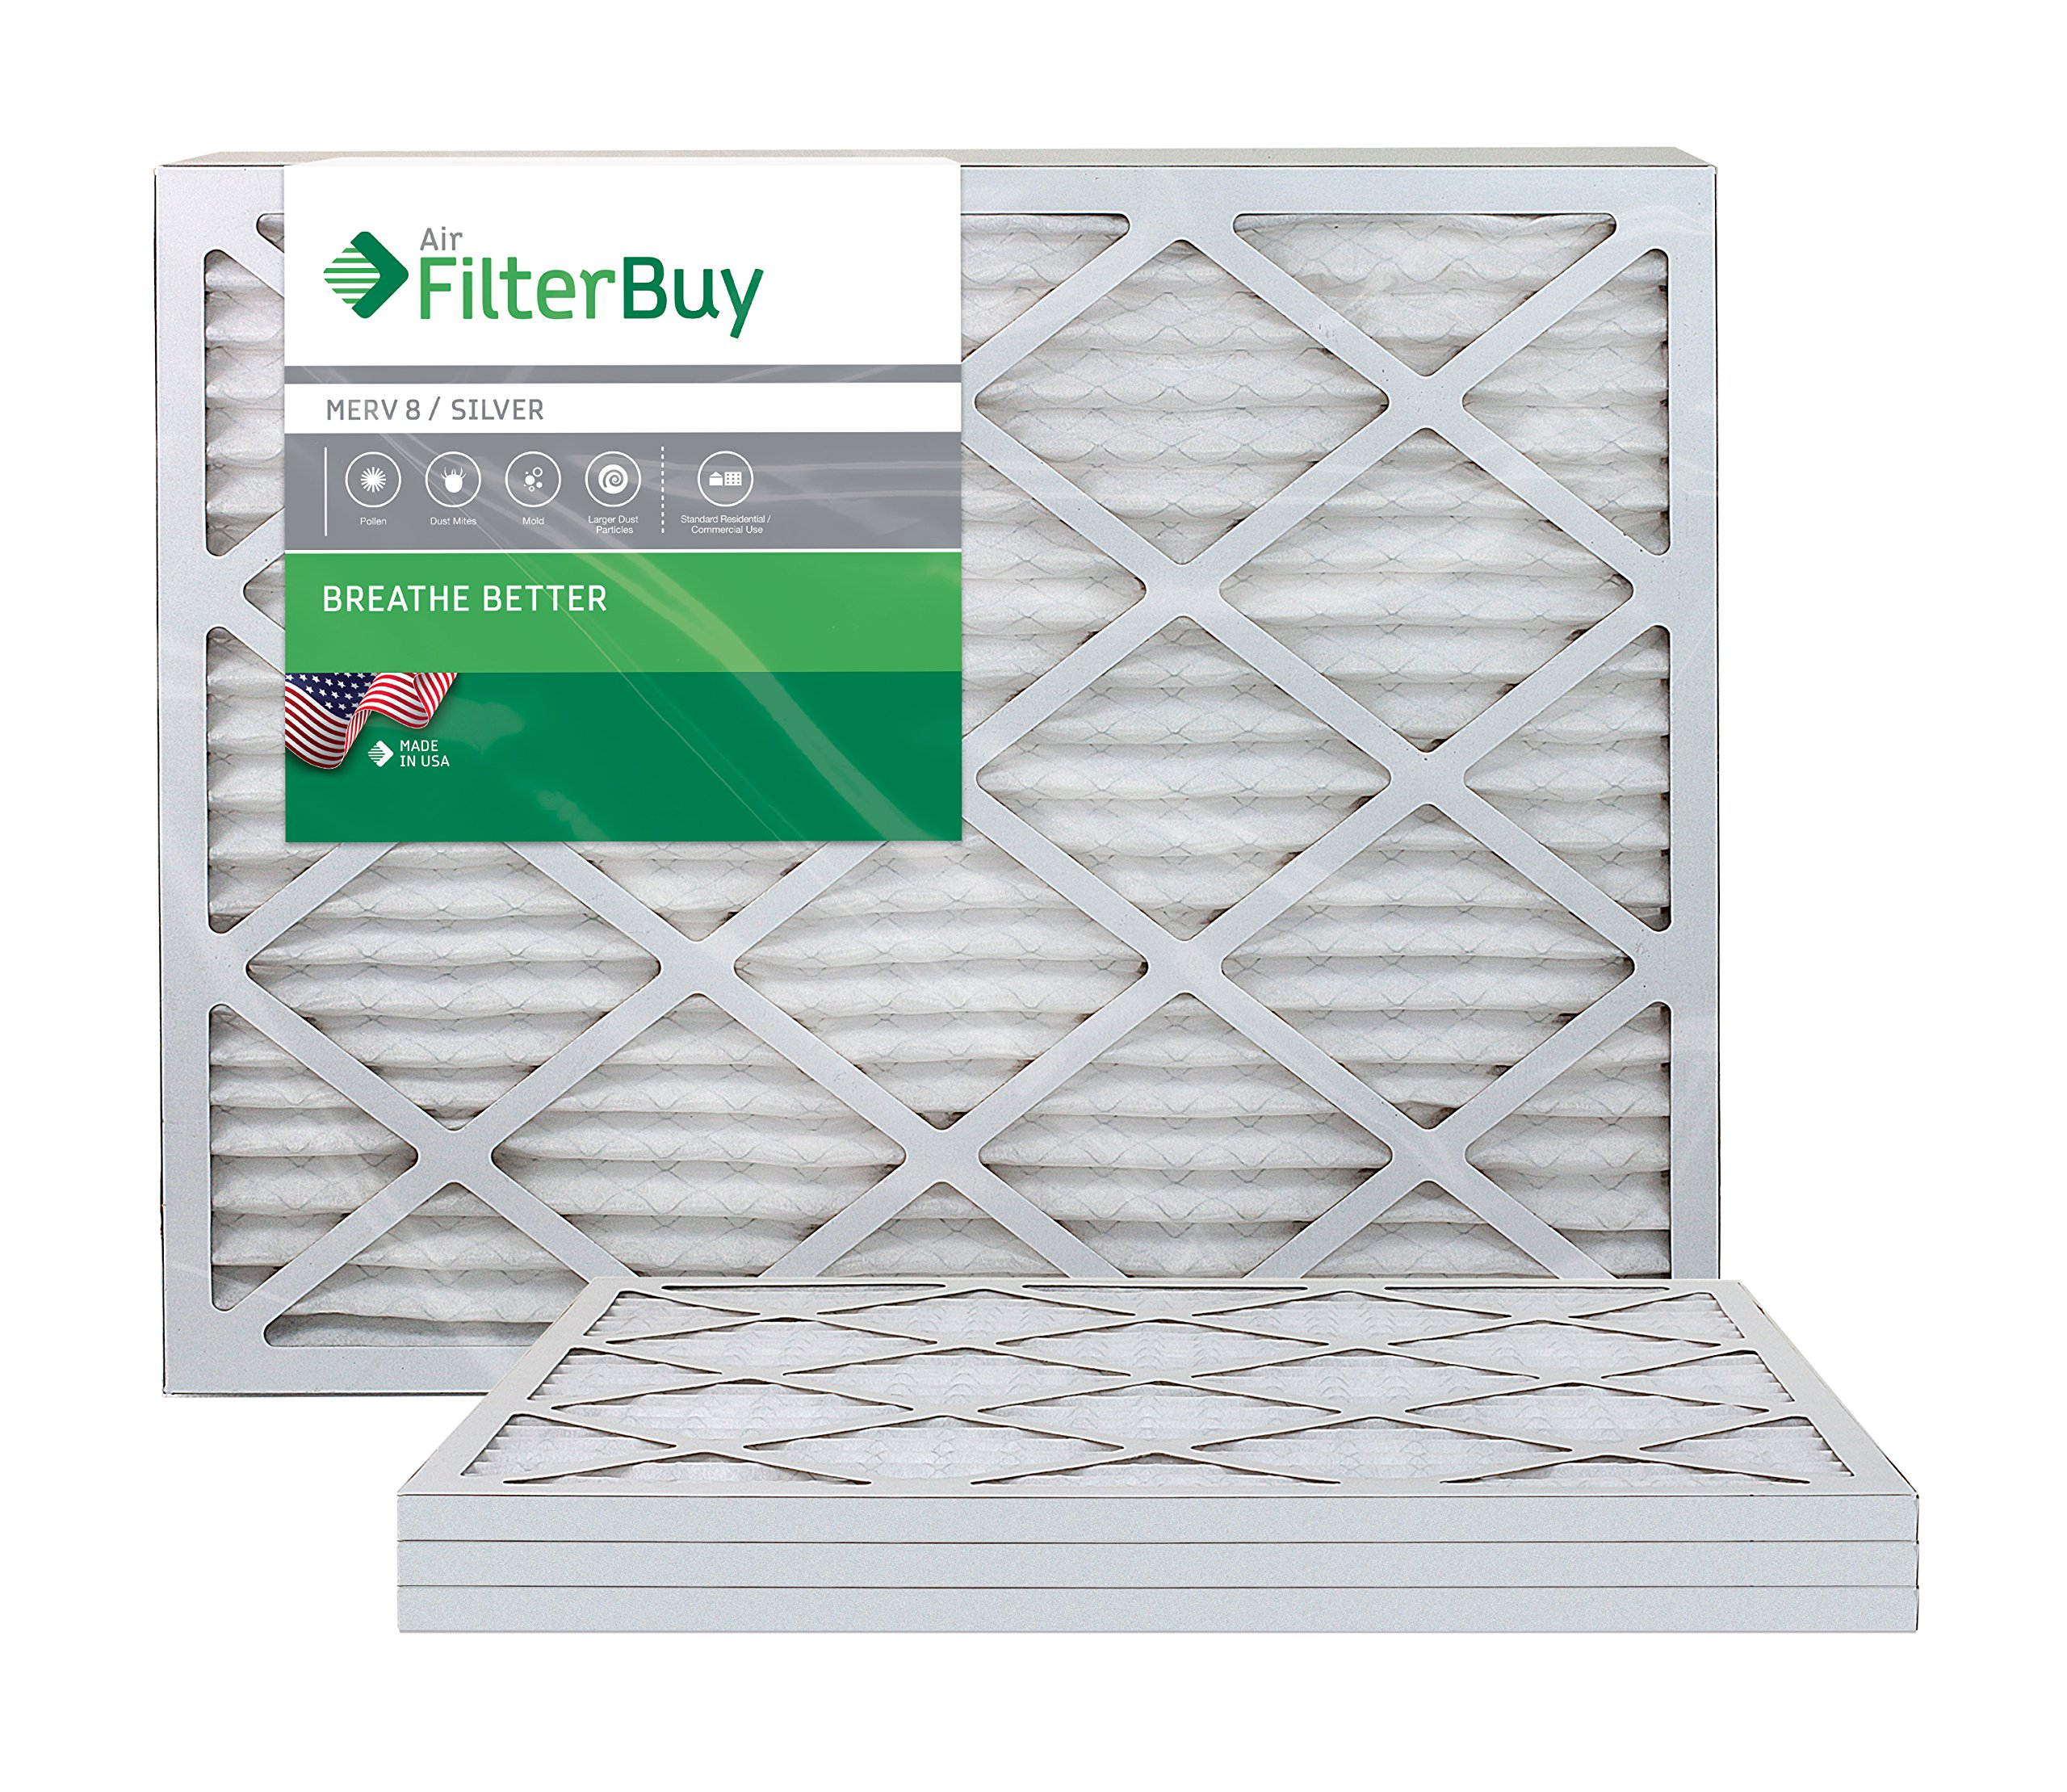 FilterBuy 20x23x1 MERV 8 Pleated AC Furnace Air Filter, (Pack of 4 Filters), 20x23x1 - Silver by FilterBuy